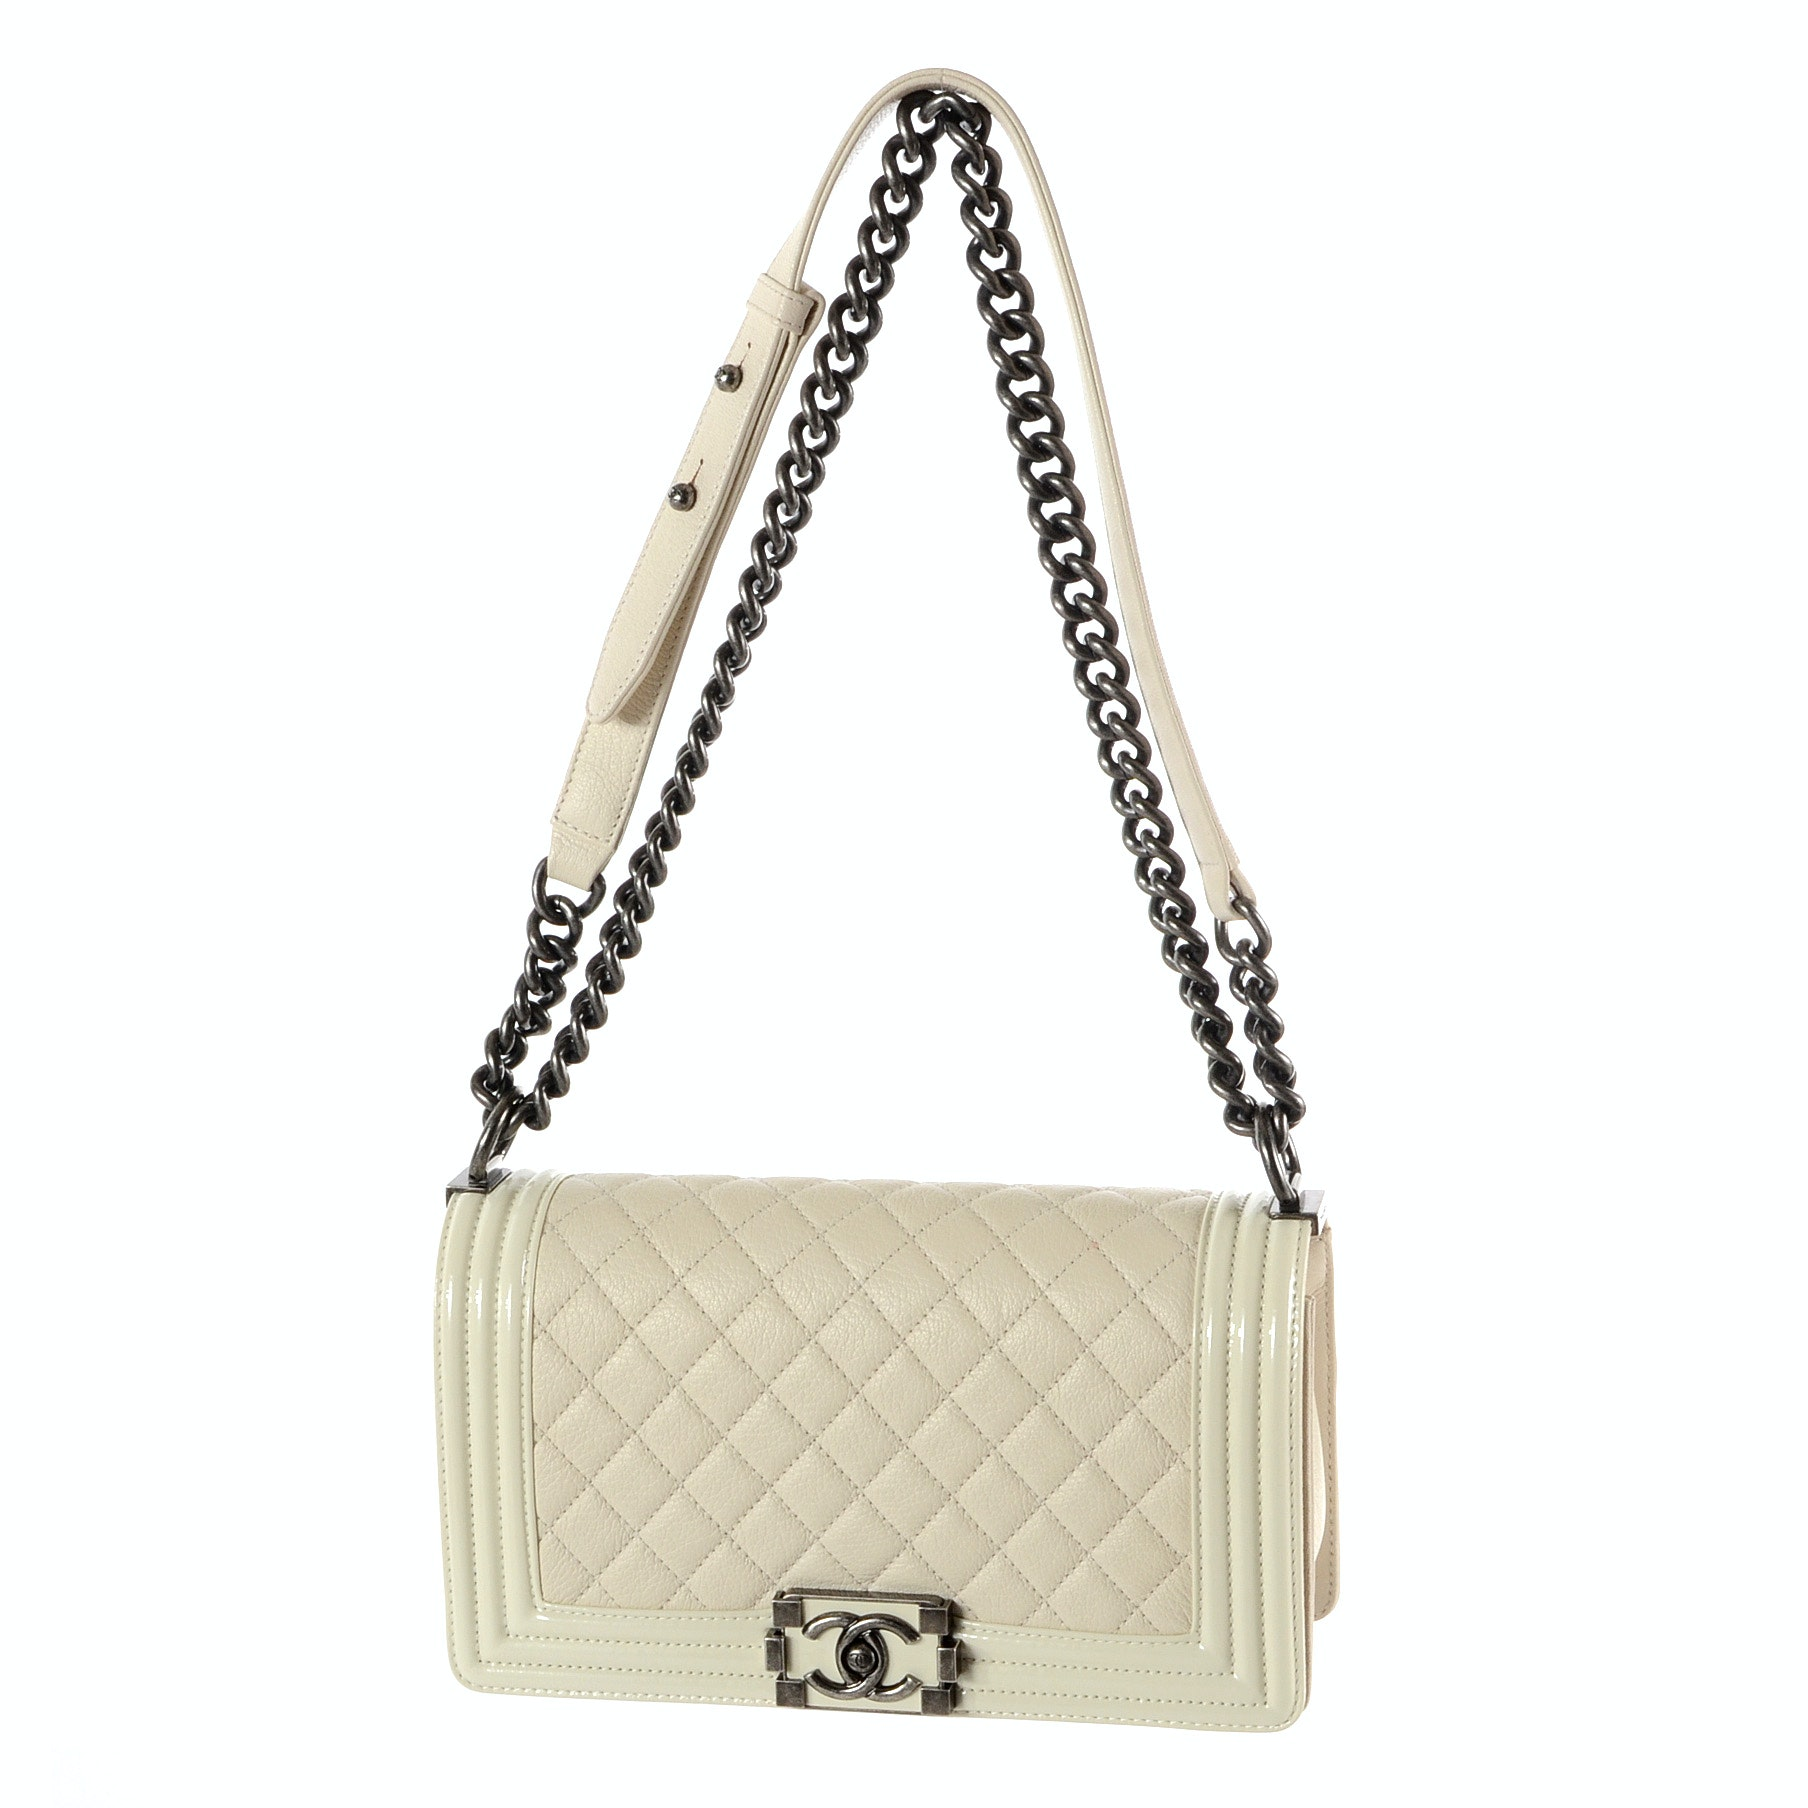 Chanel Boy Flap Bag in Ivory Quilted and Patent Leather